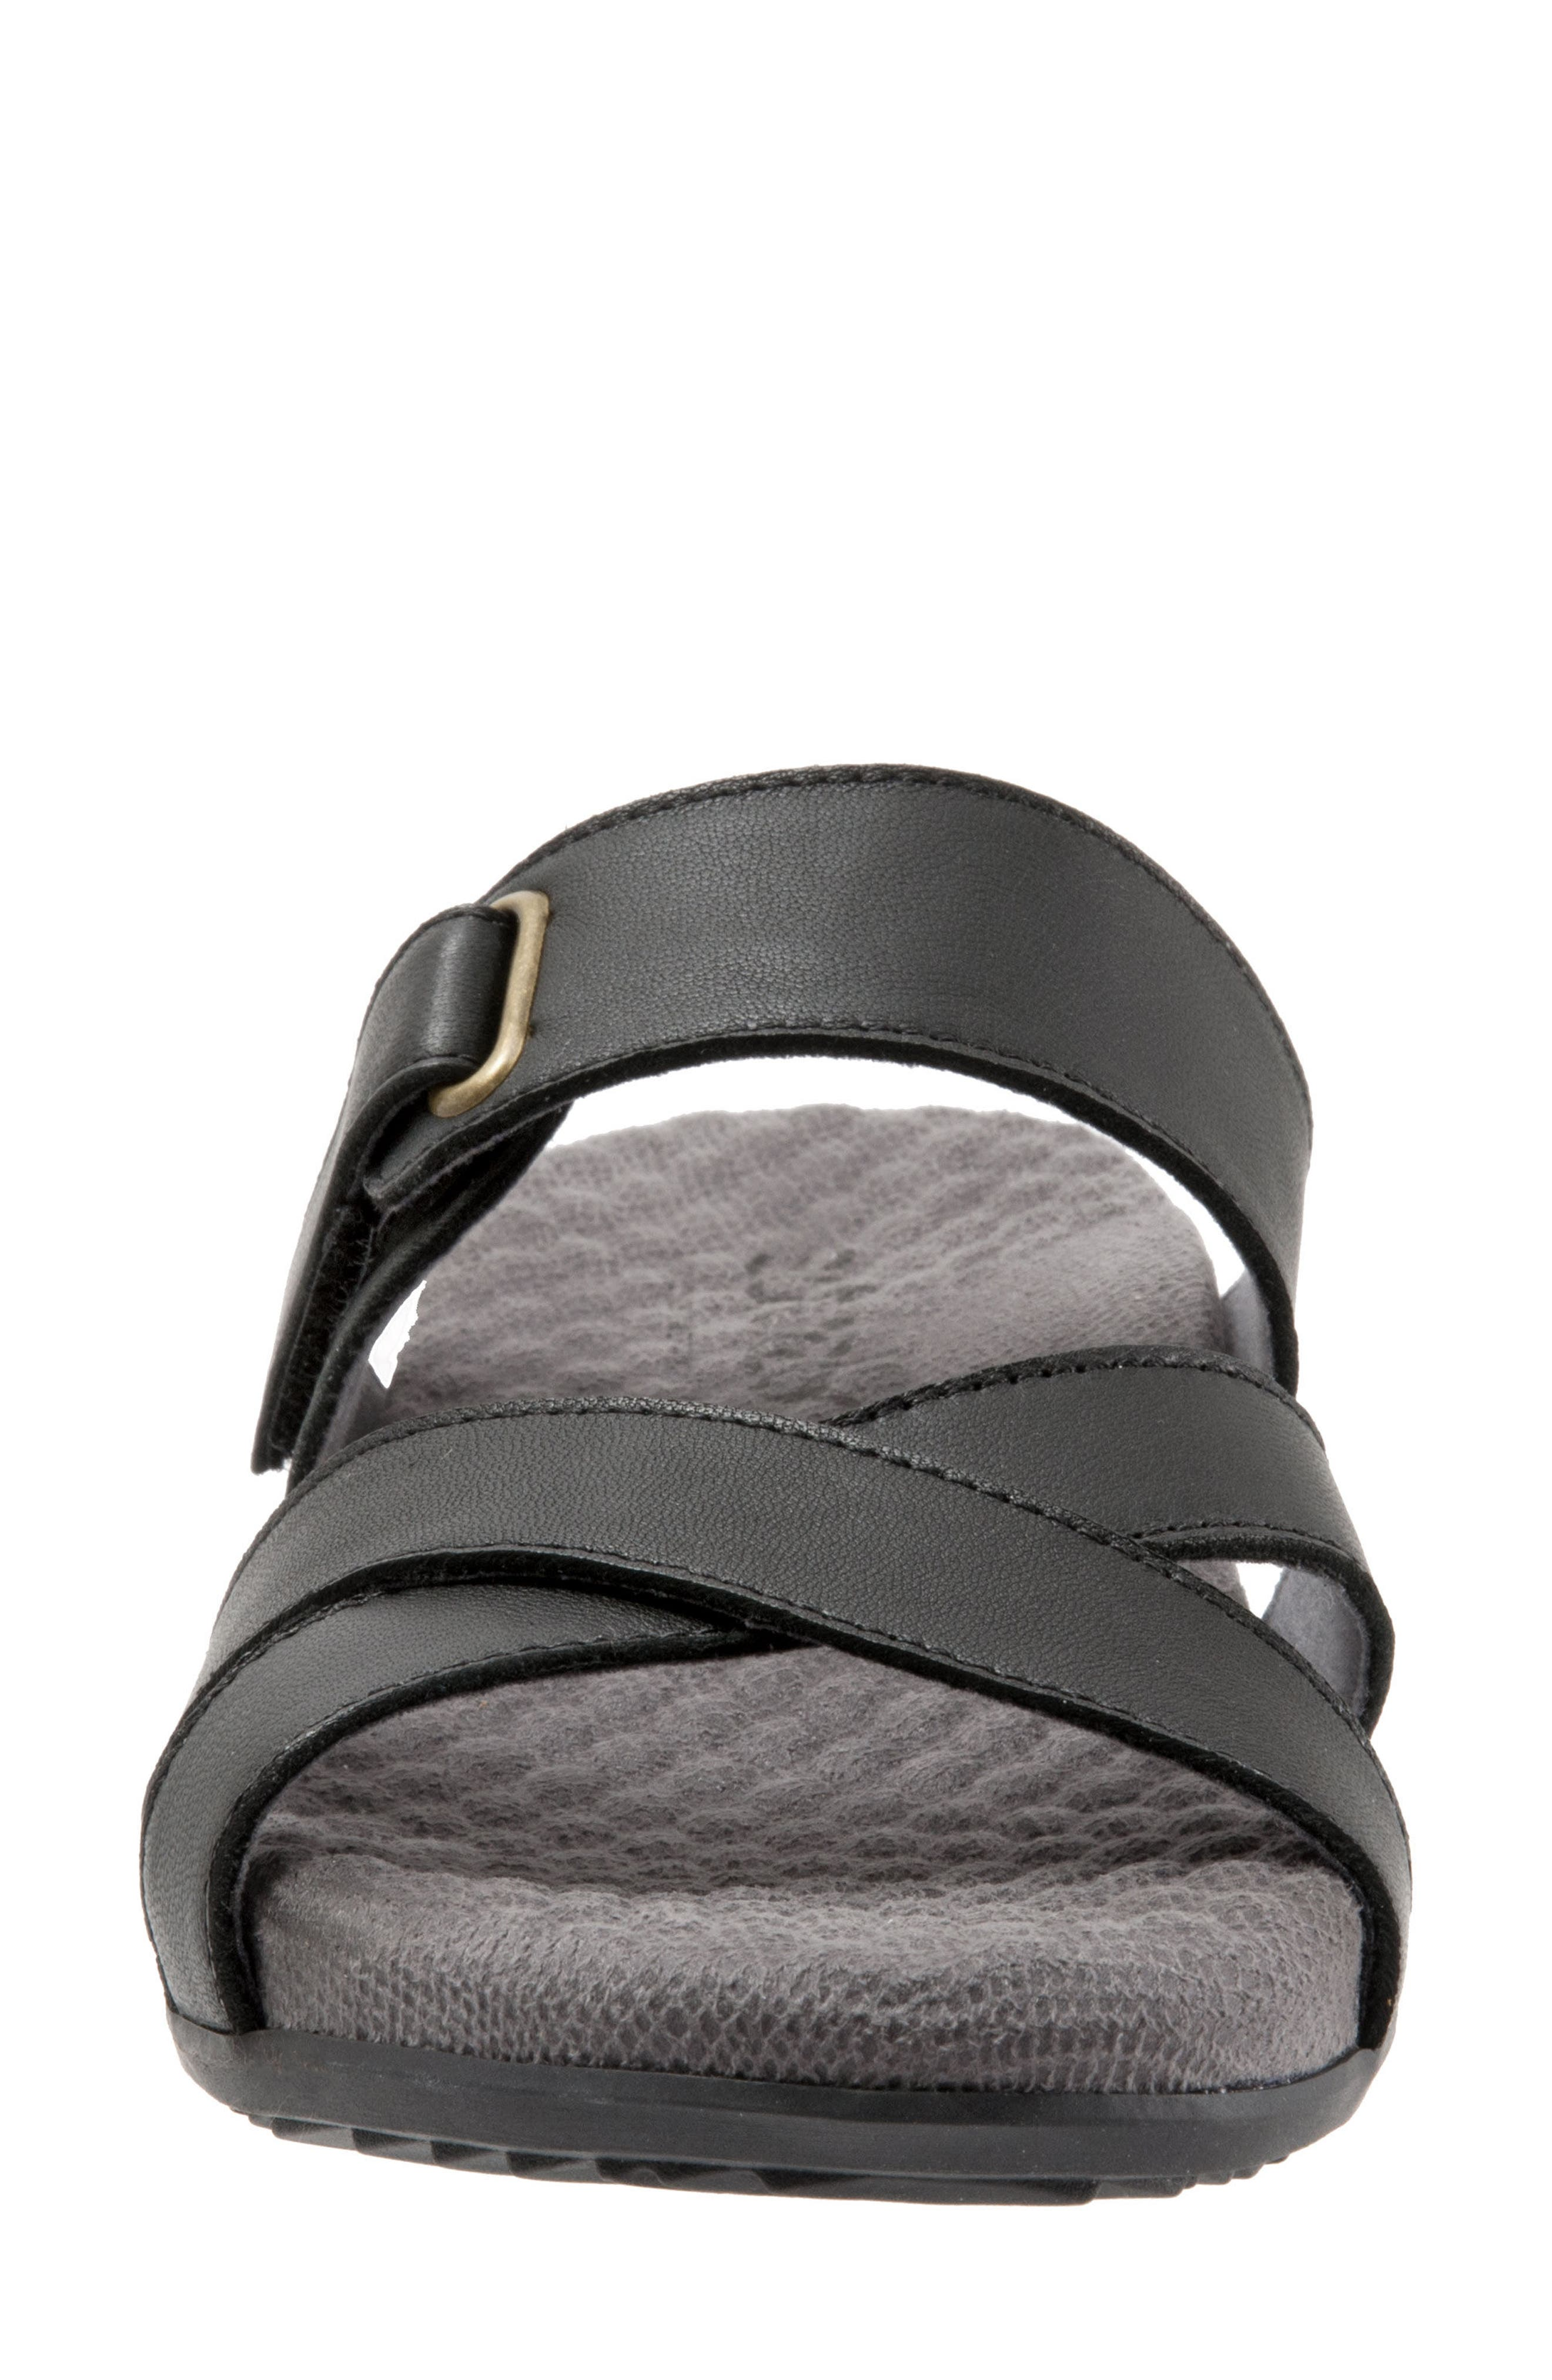 SOFTWALK<SUP>®</SUP>, Brimley Sandal, Alternate thumbnail 4, color, BLACK LEATHER